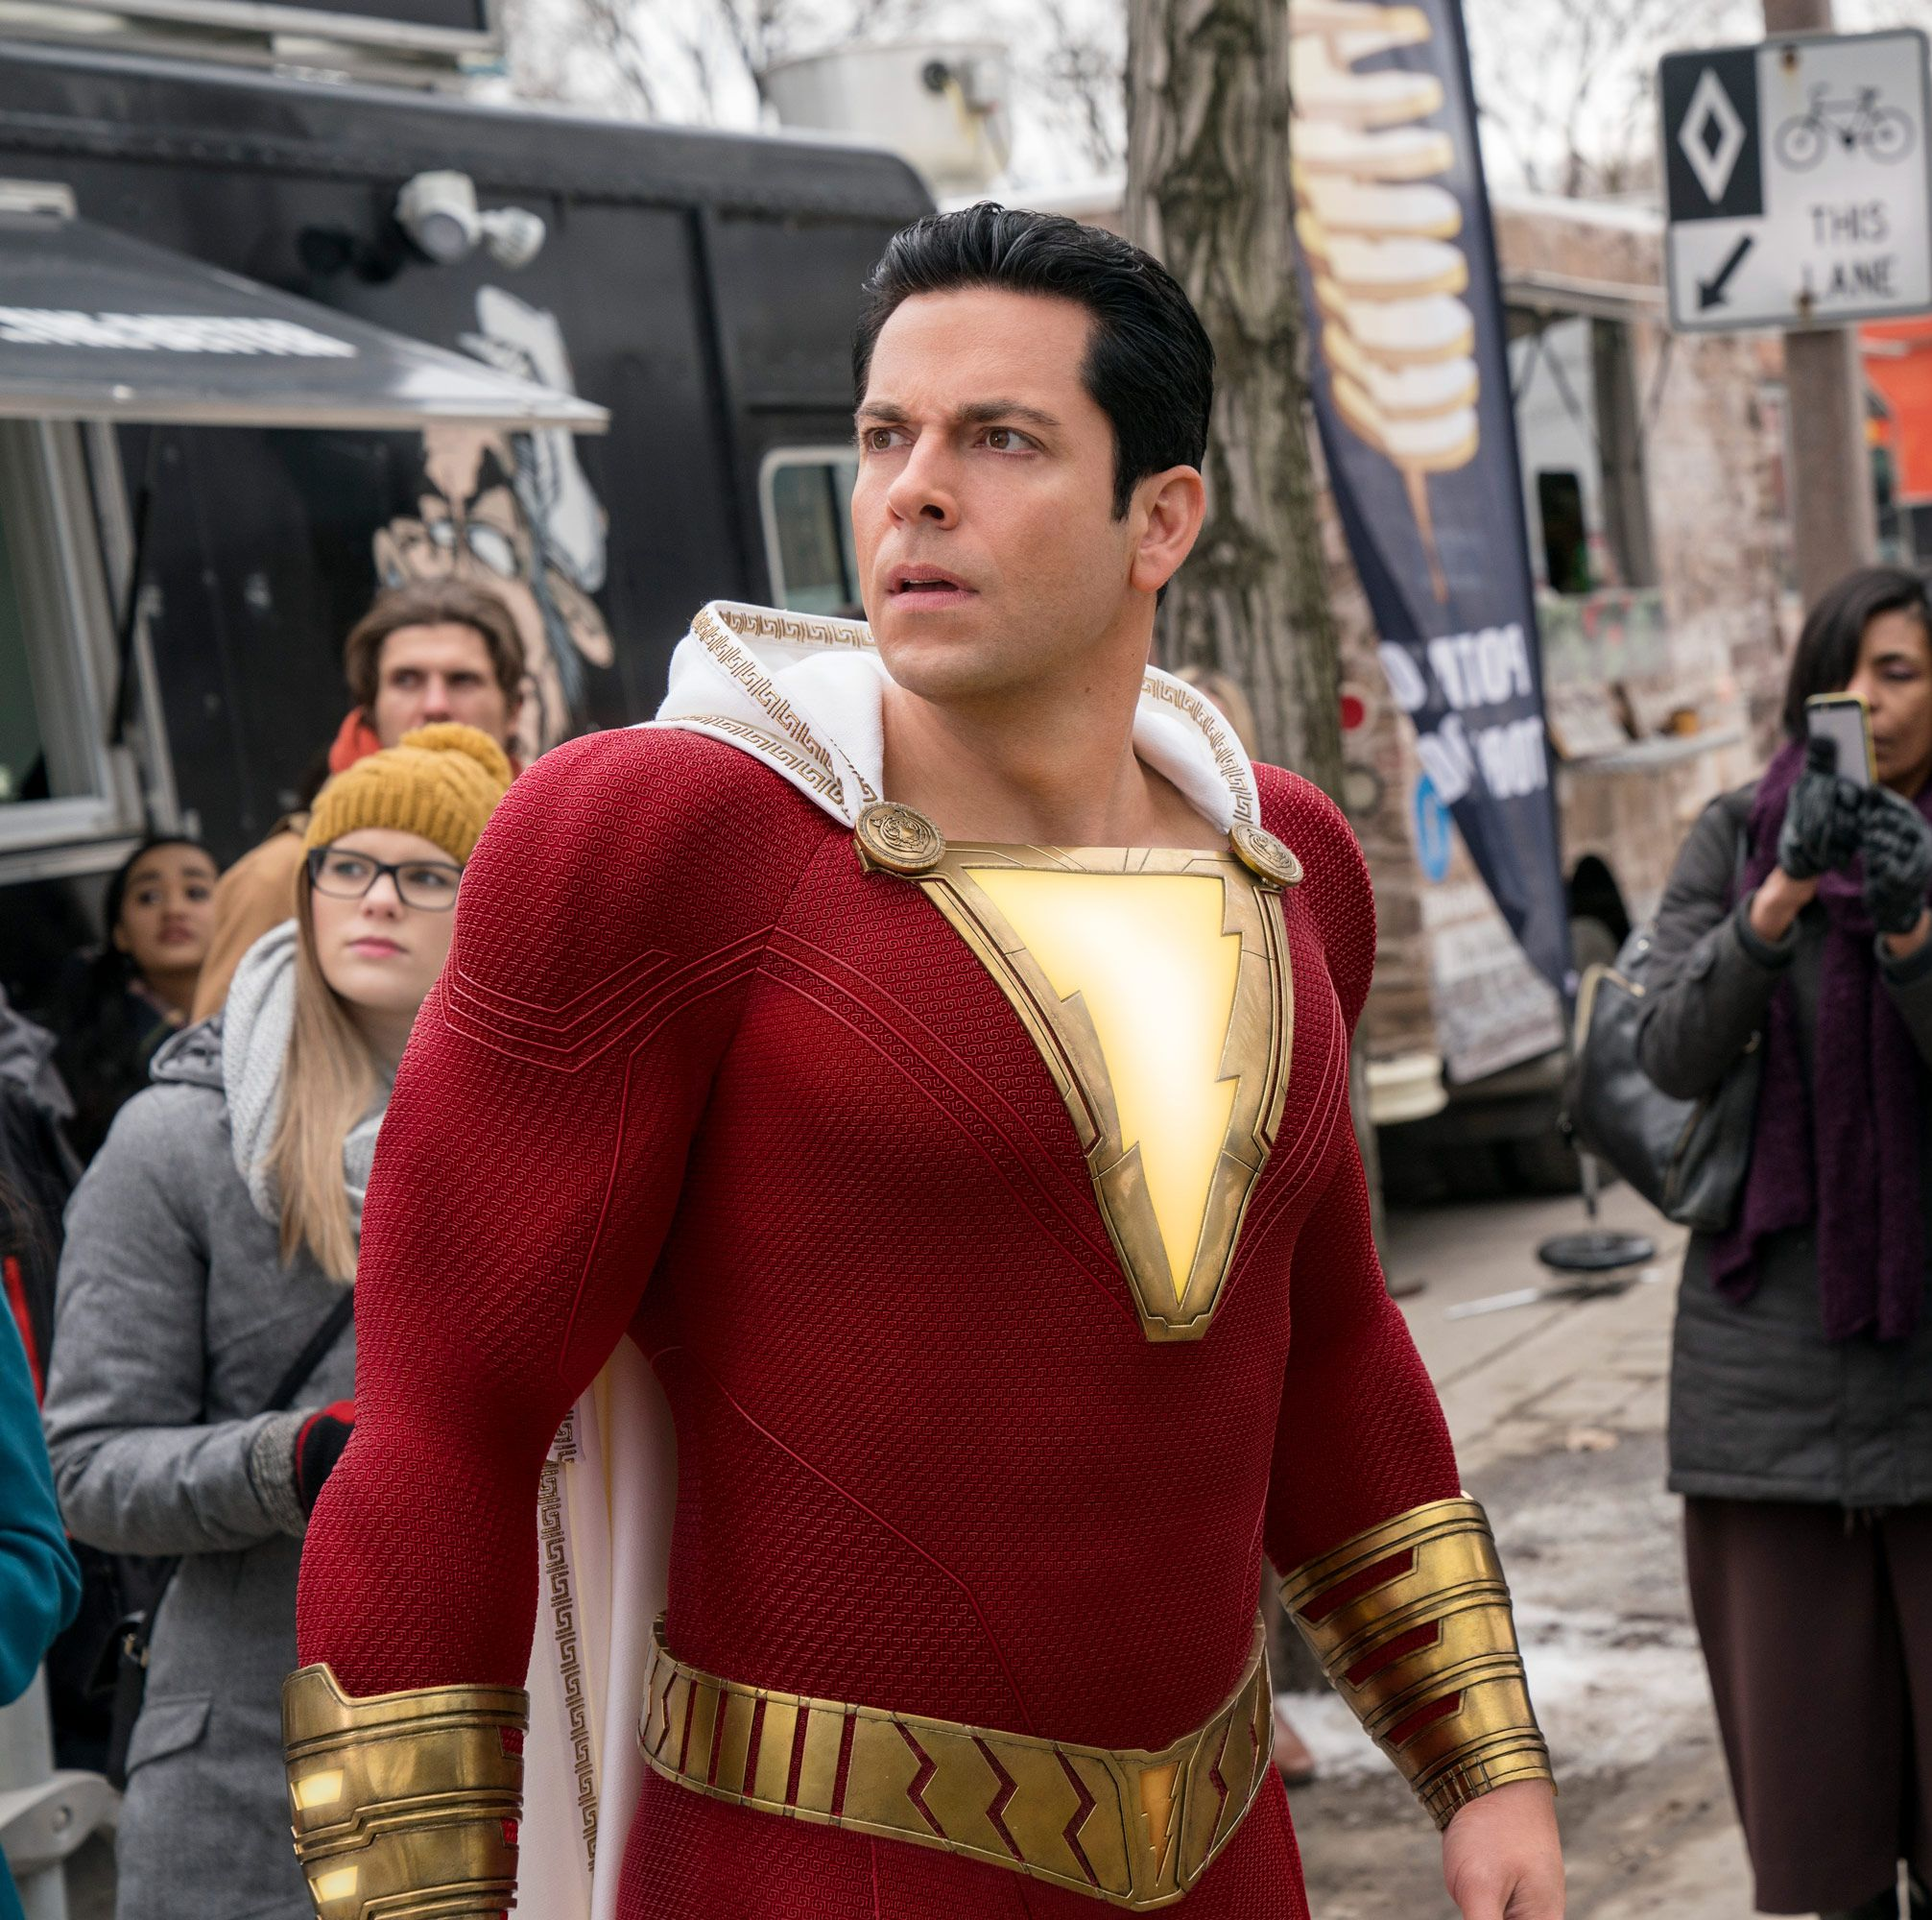 Shazam! first reviews call it one of the most fun superhero films ever made